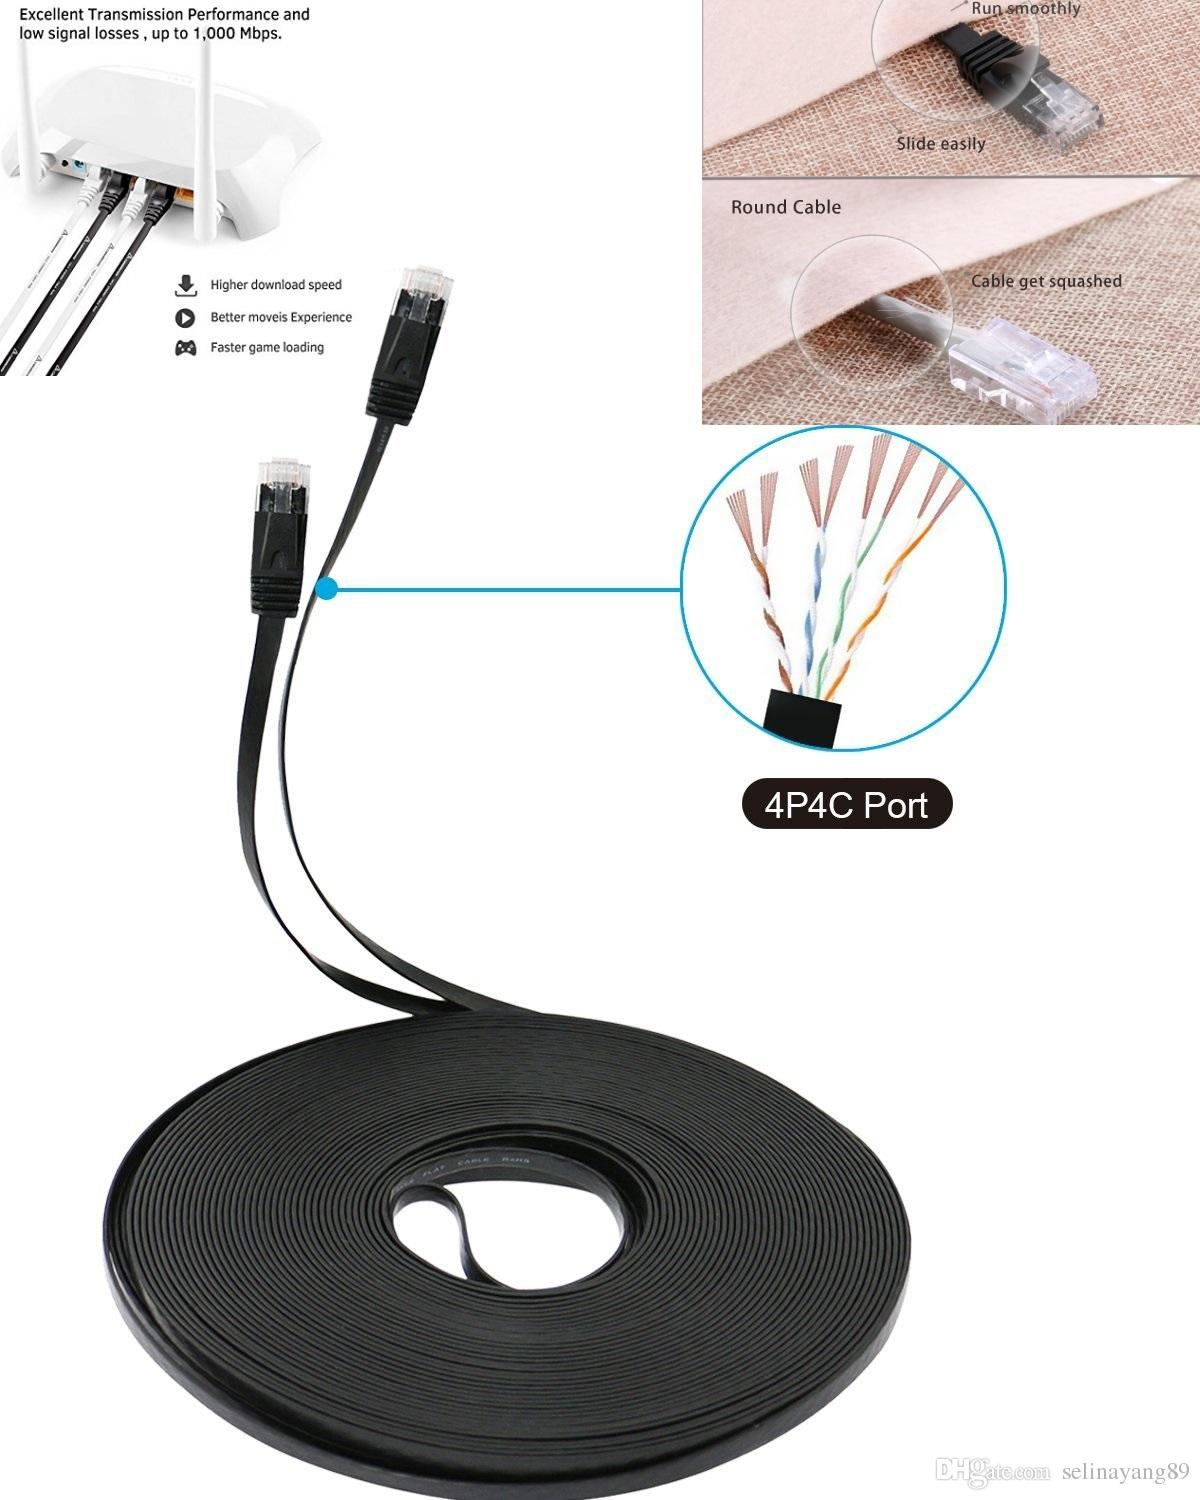 Lnyuelec 05m Cable Pure Copper Wire Cat6 Flat Utp Ethernet Network How To Install Rj45 Patch Lan White Black Blue Cables And Connector Computer Printer